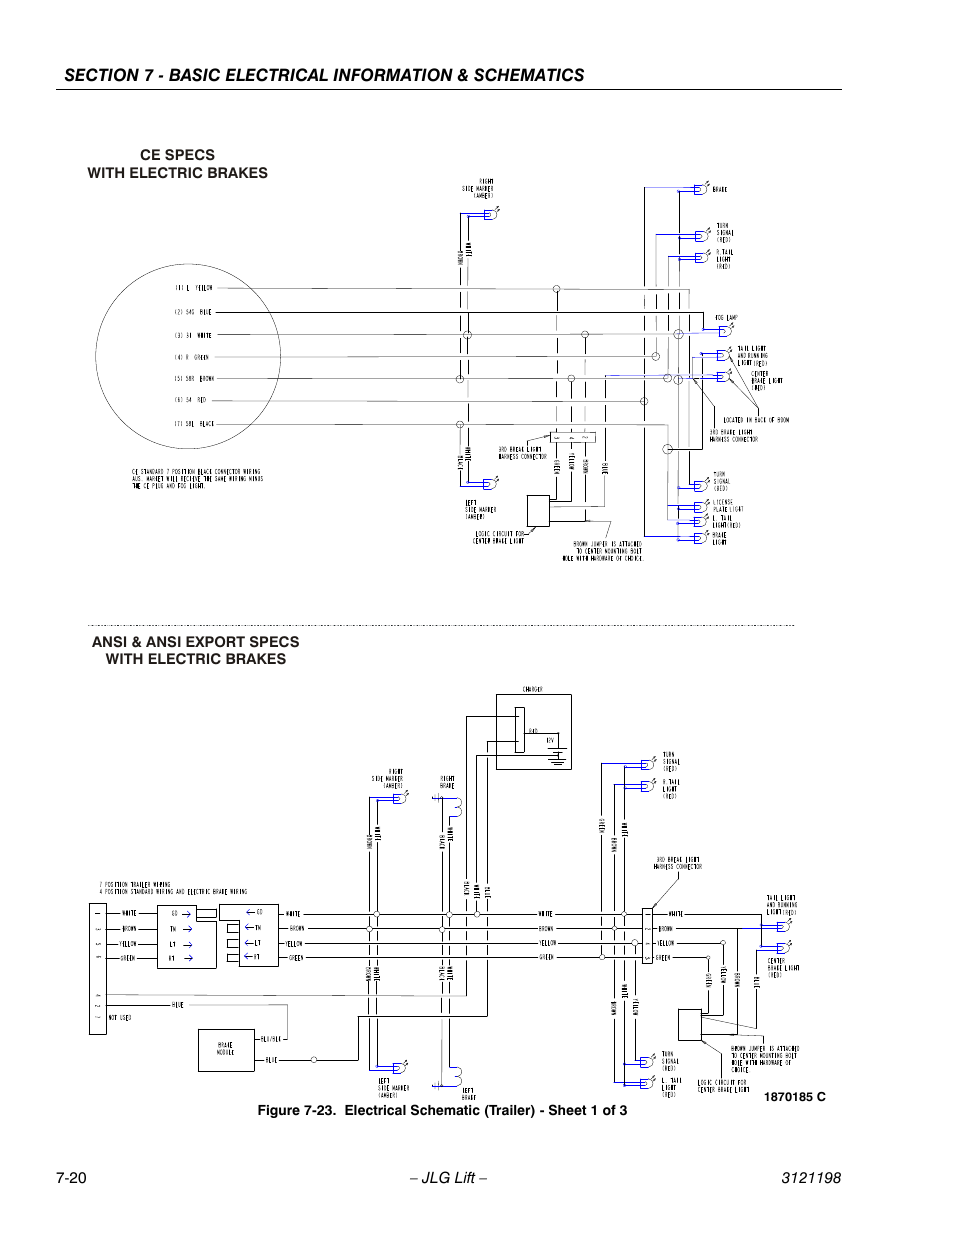 Electrical schematic (trailer) - sheet 1 of 3 -20 | JLG T350 ... on jlg lift fuel tank, genie wiring diagram, jlg lift fan belt, komatsu wiring diagram, john deere wiring diagram, jlg lift spark plug,